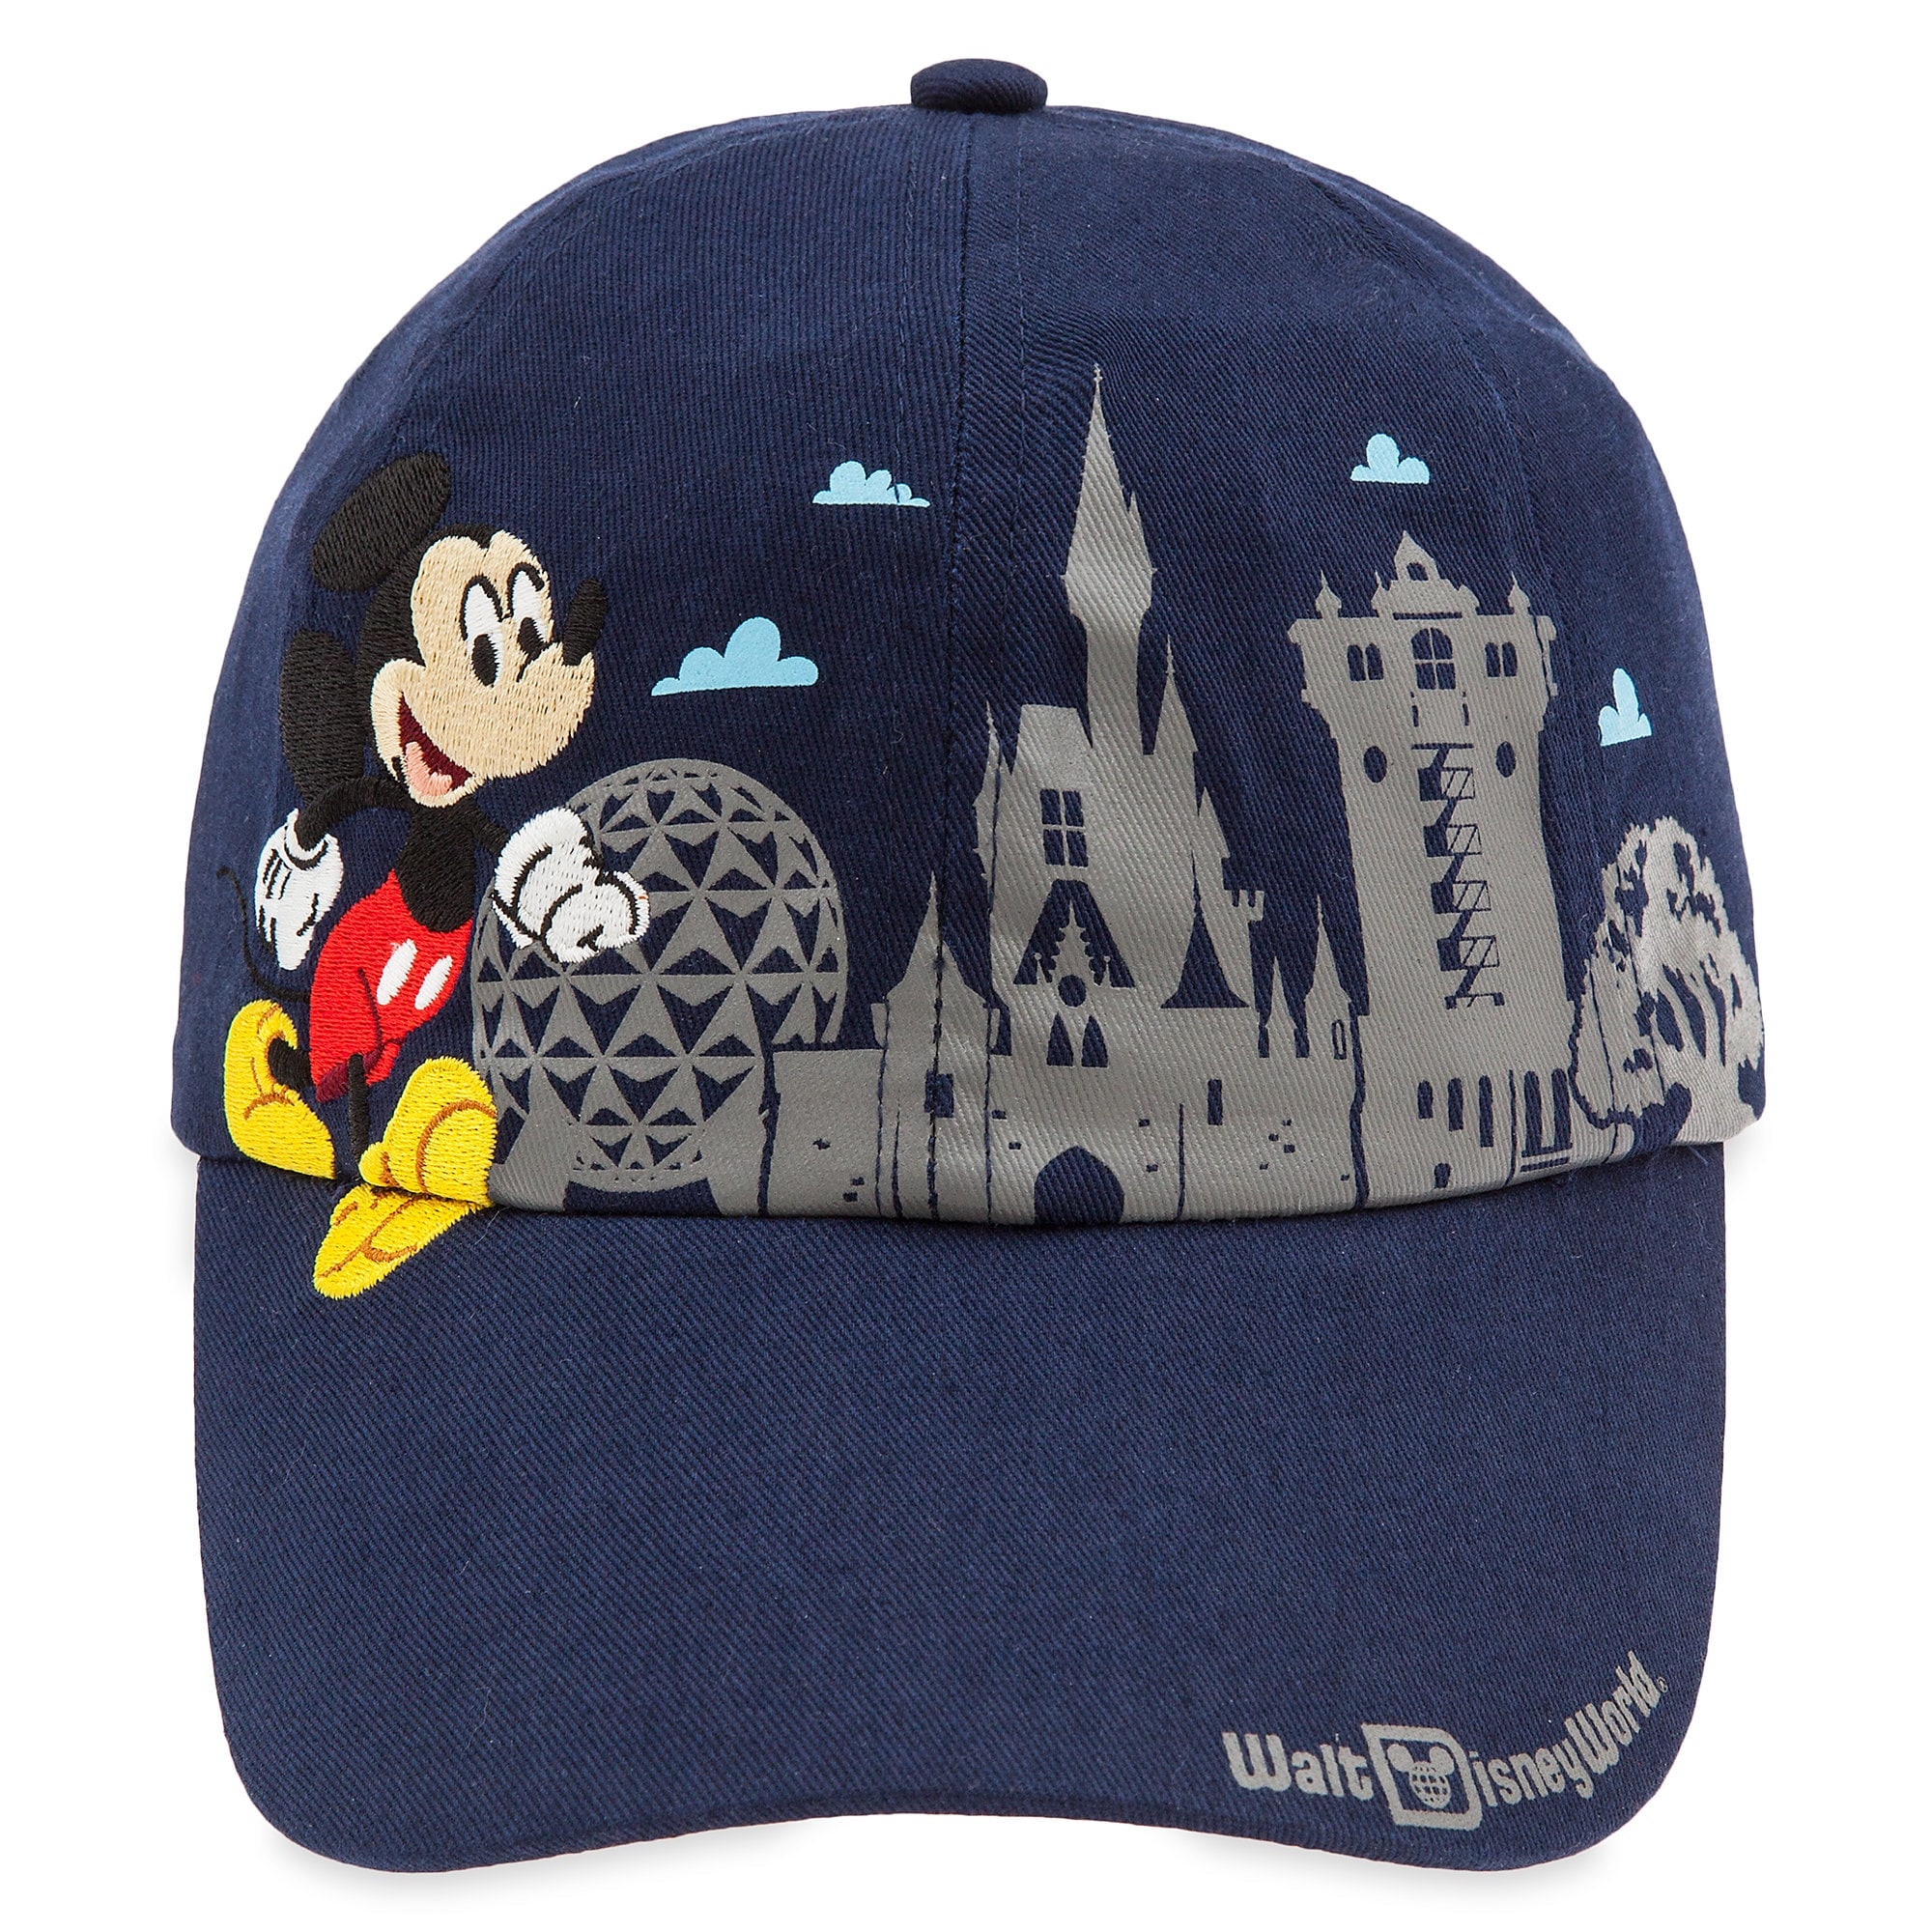 outlet store 42e2c 7a069 ... sweden product image of mickey mouse baseball cap for kids walt disney  world 2019 1 6c9d5